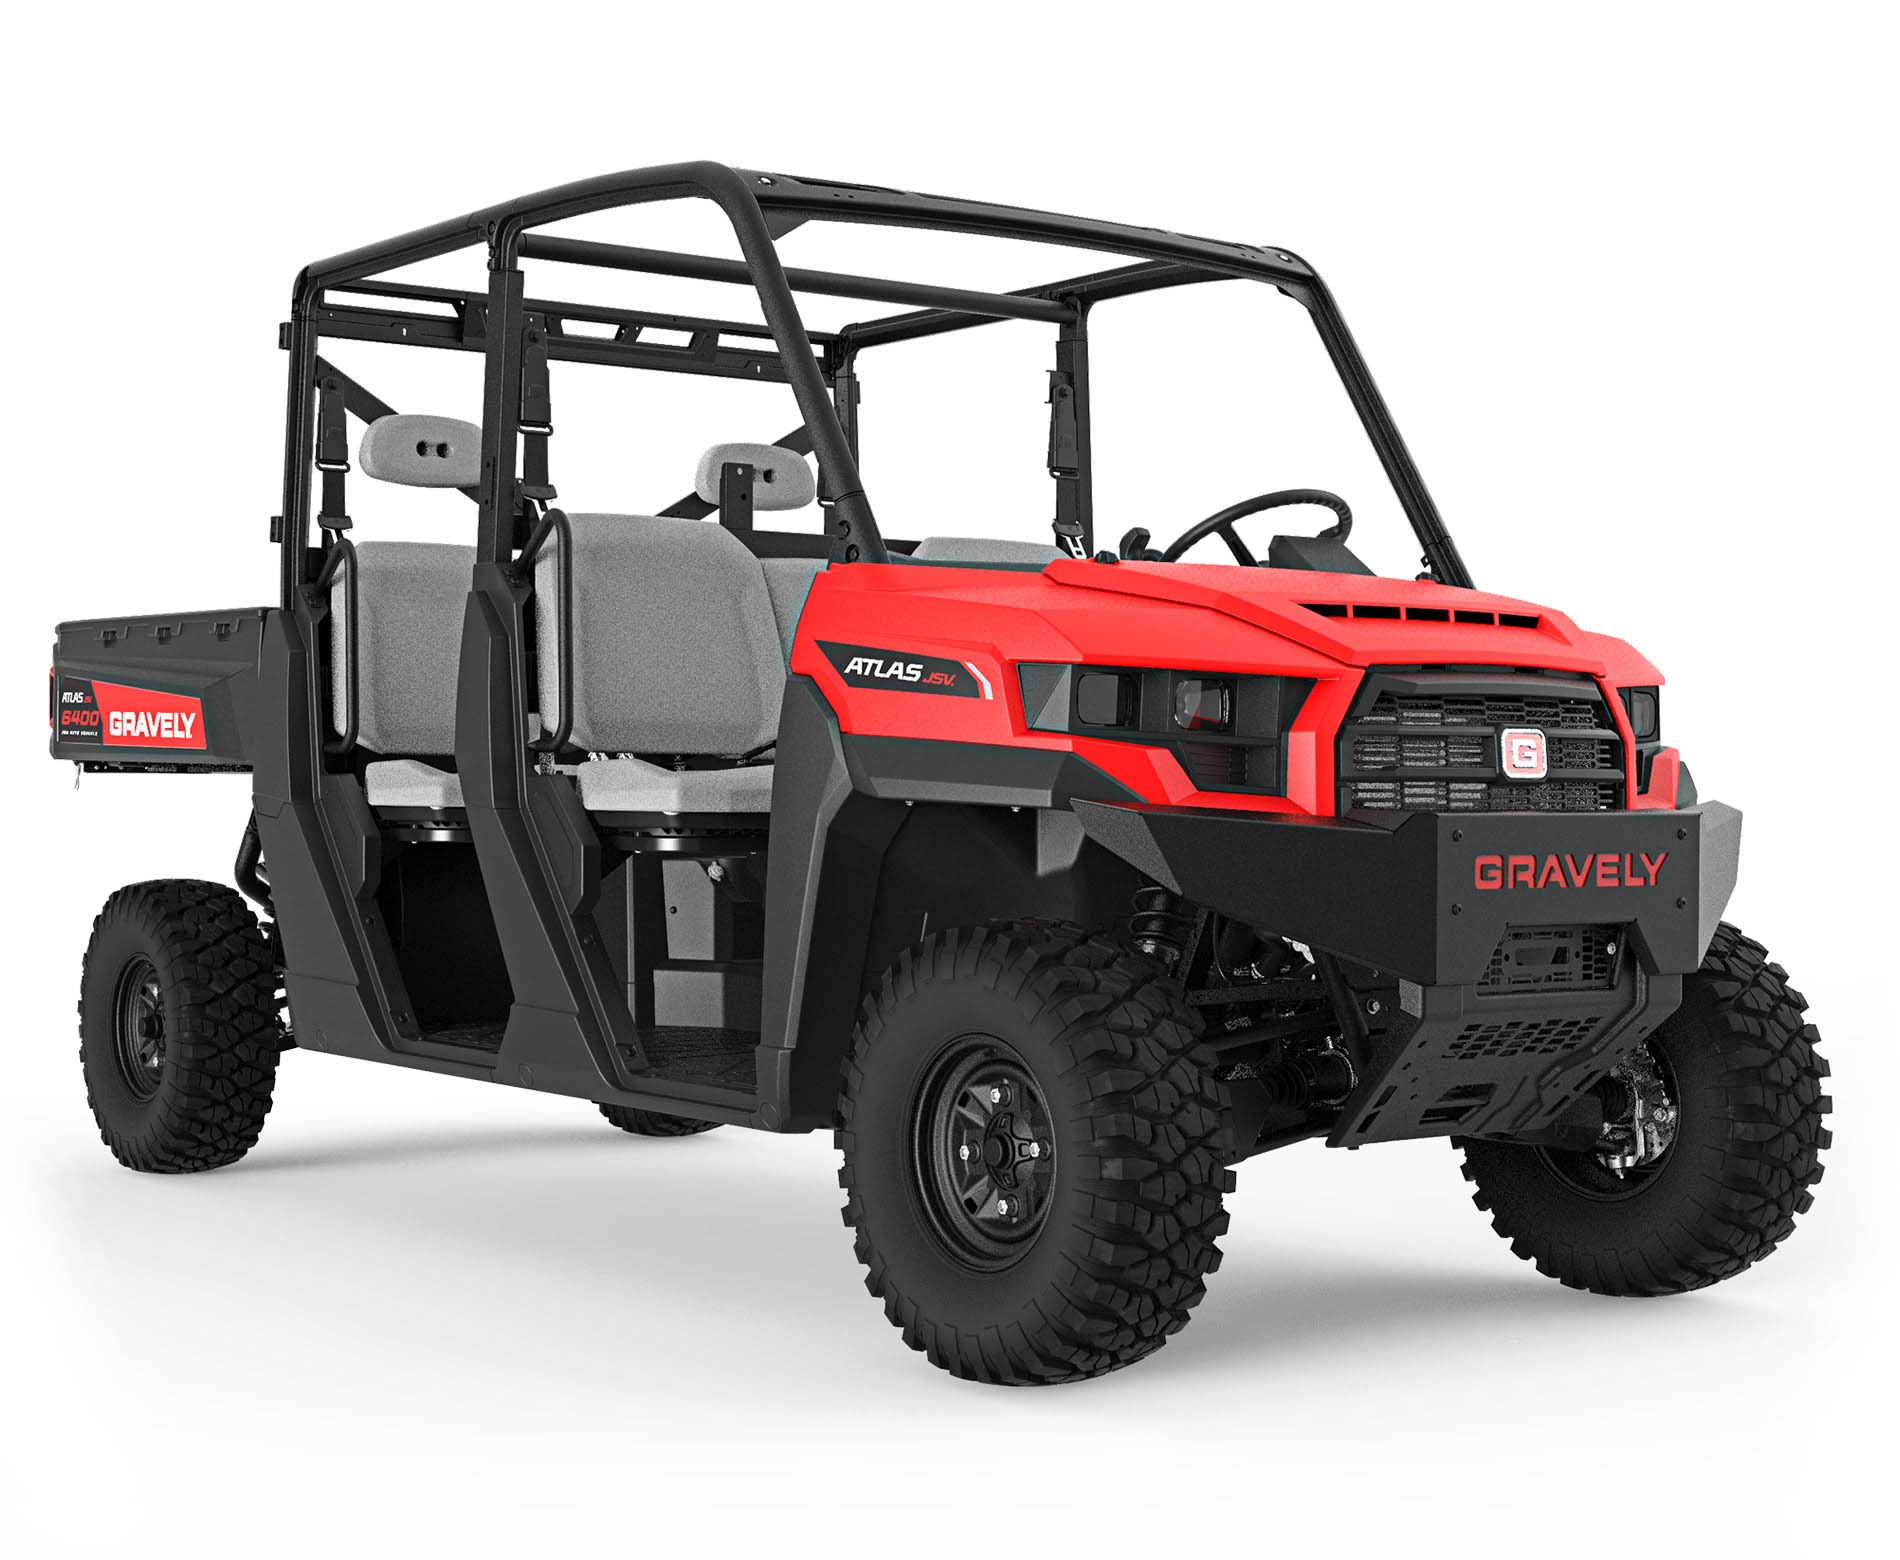 atlas-jsv-6000-utv-side-by-side-2020